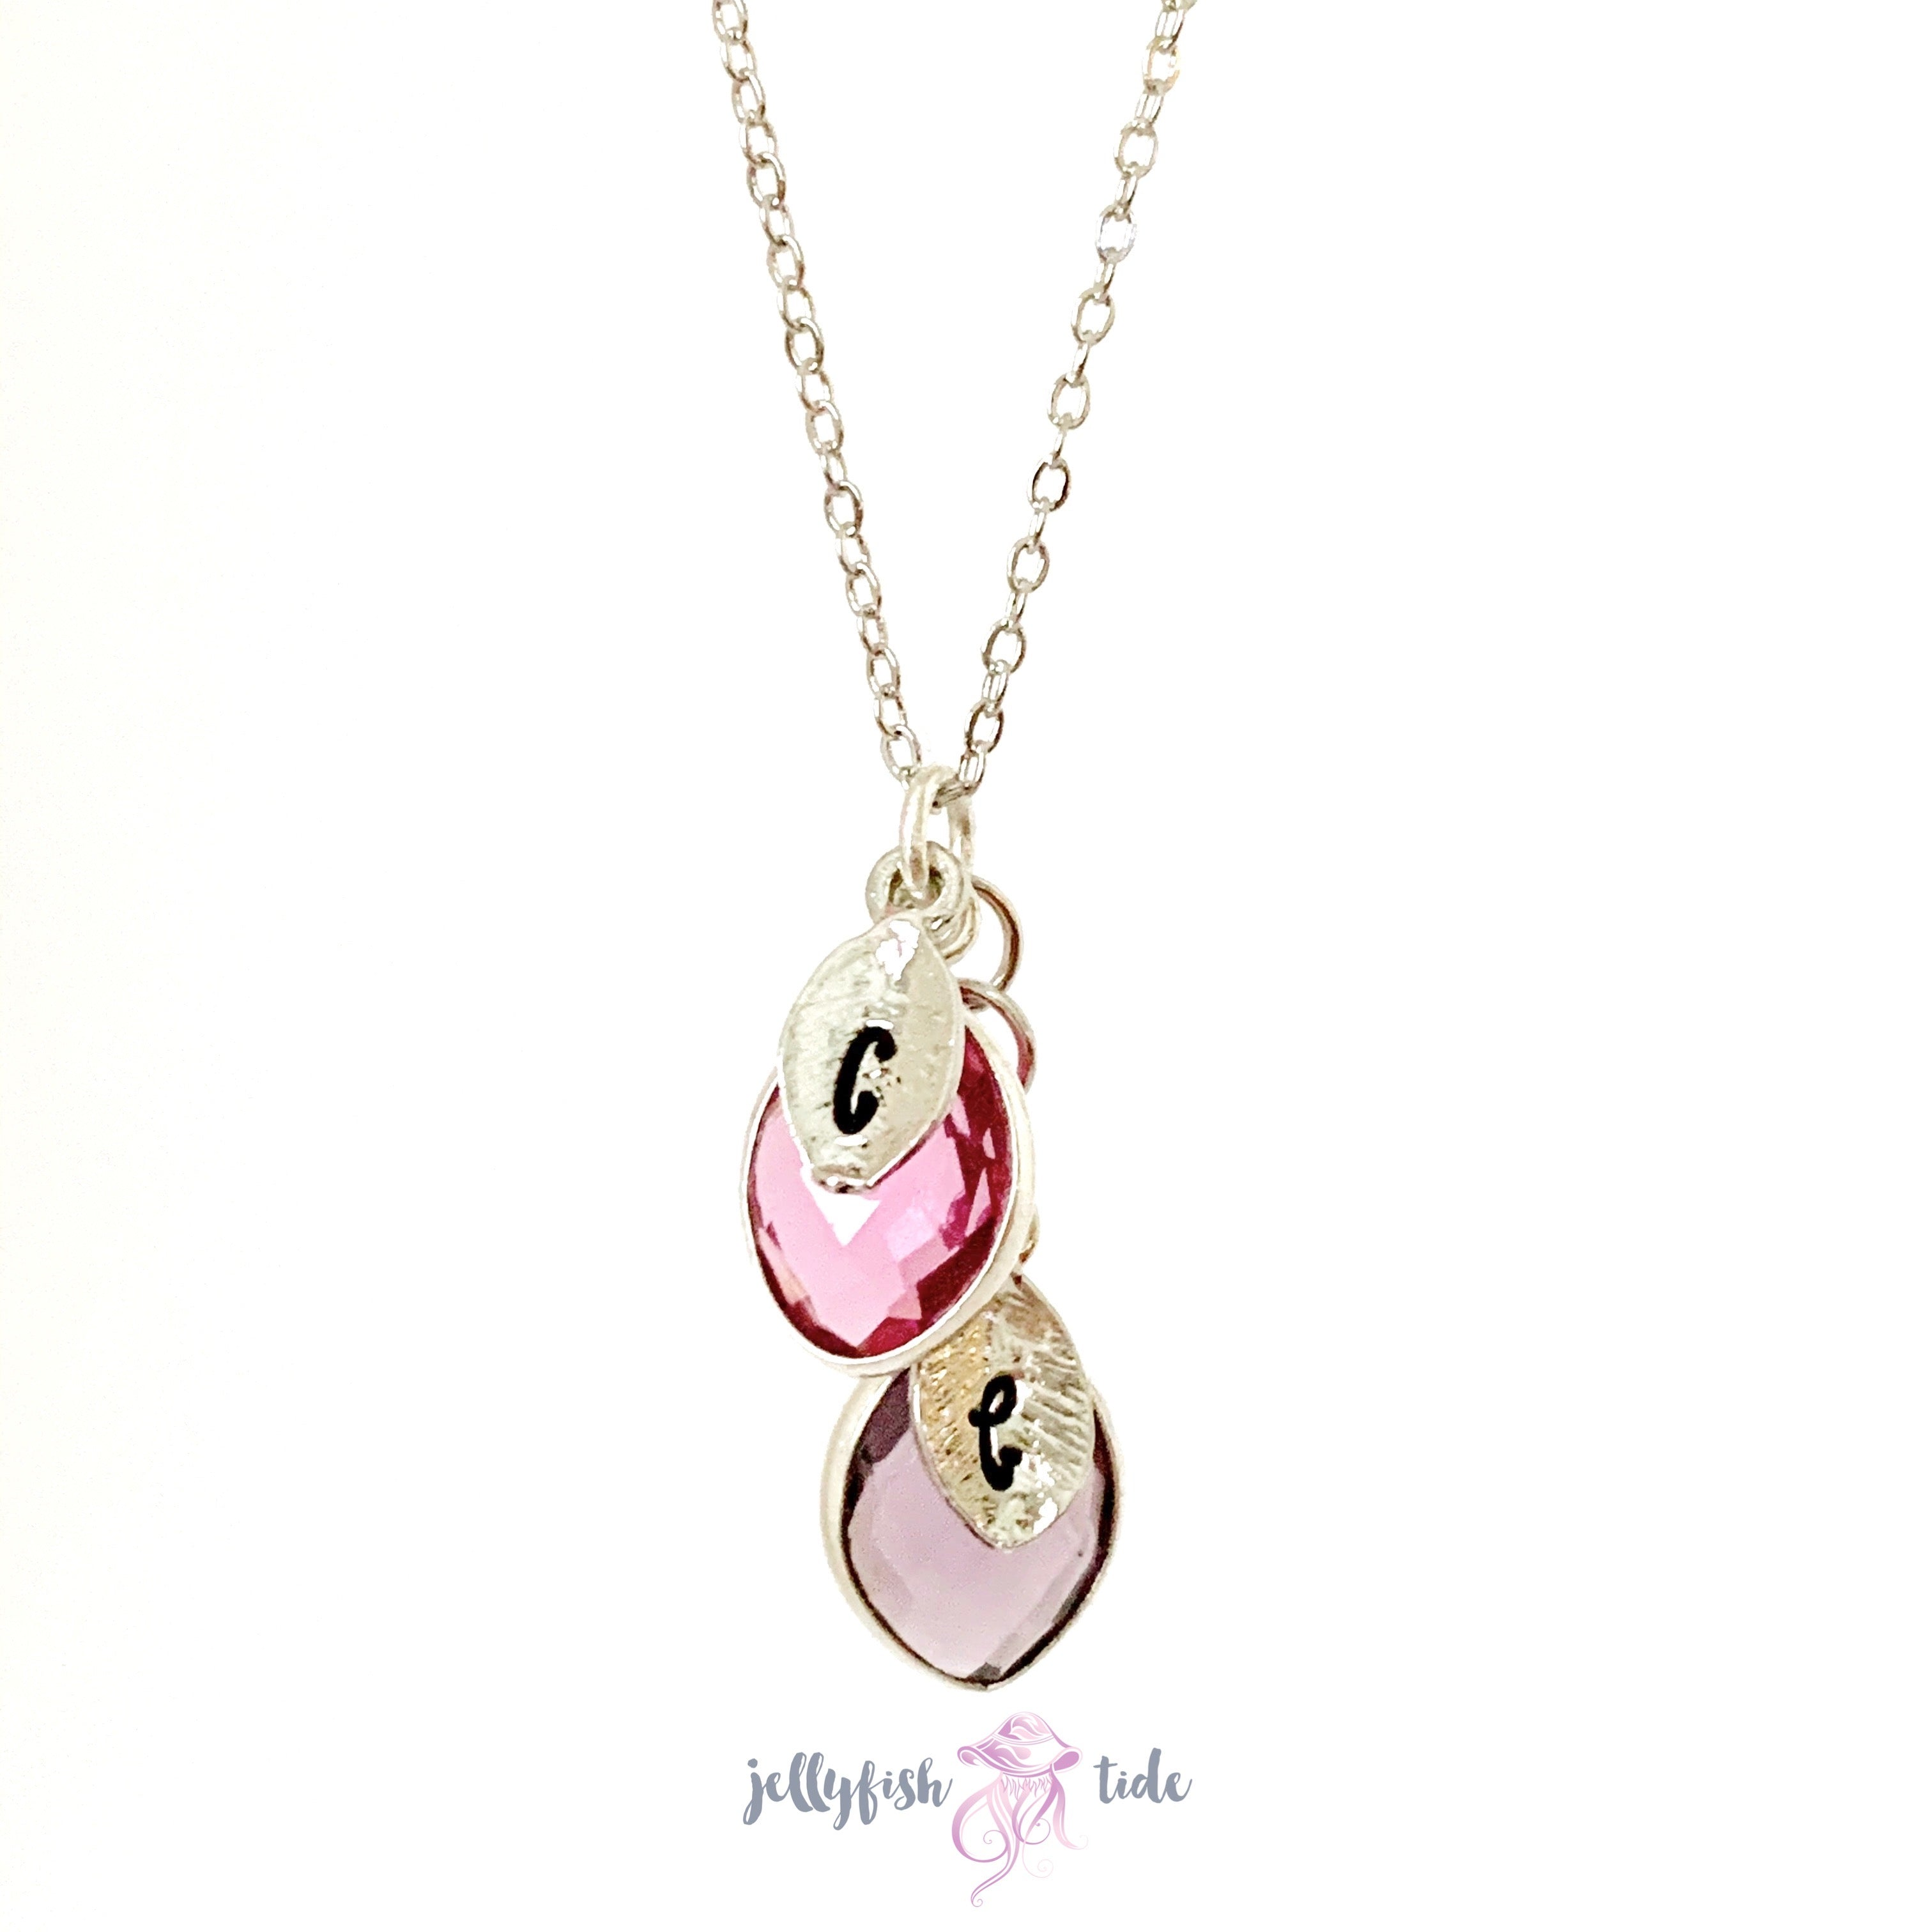 Initial Leaf and Gemstone Birthstone Necklace